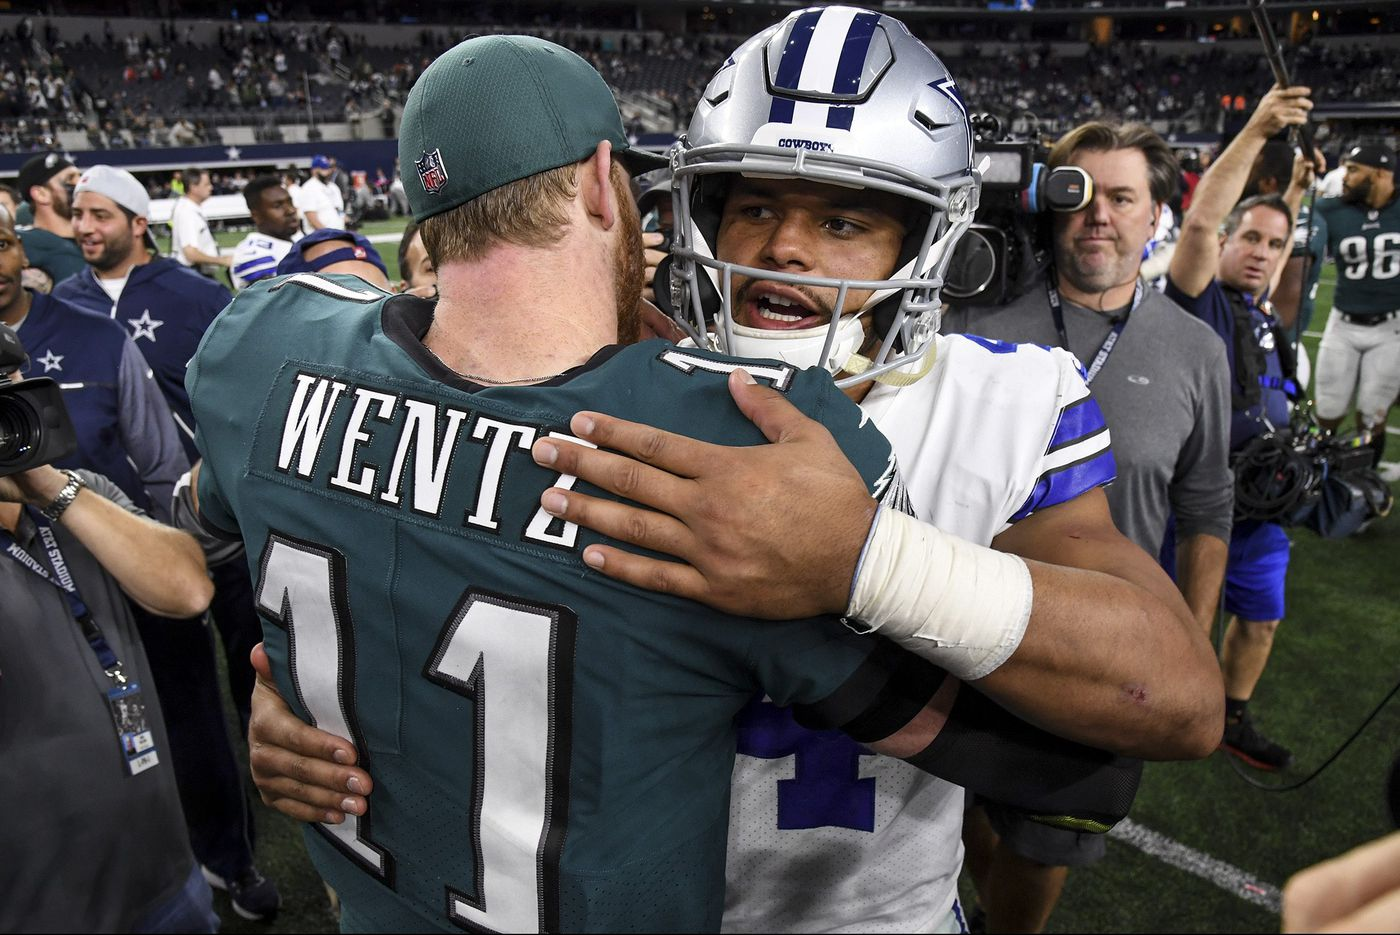 Eagles are early touchdown favorites over the Cowboys | sports betting